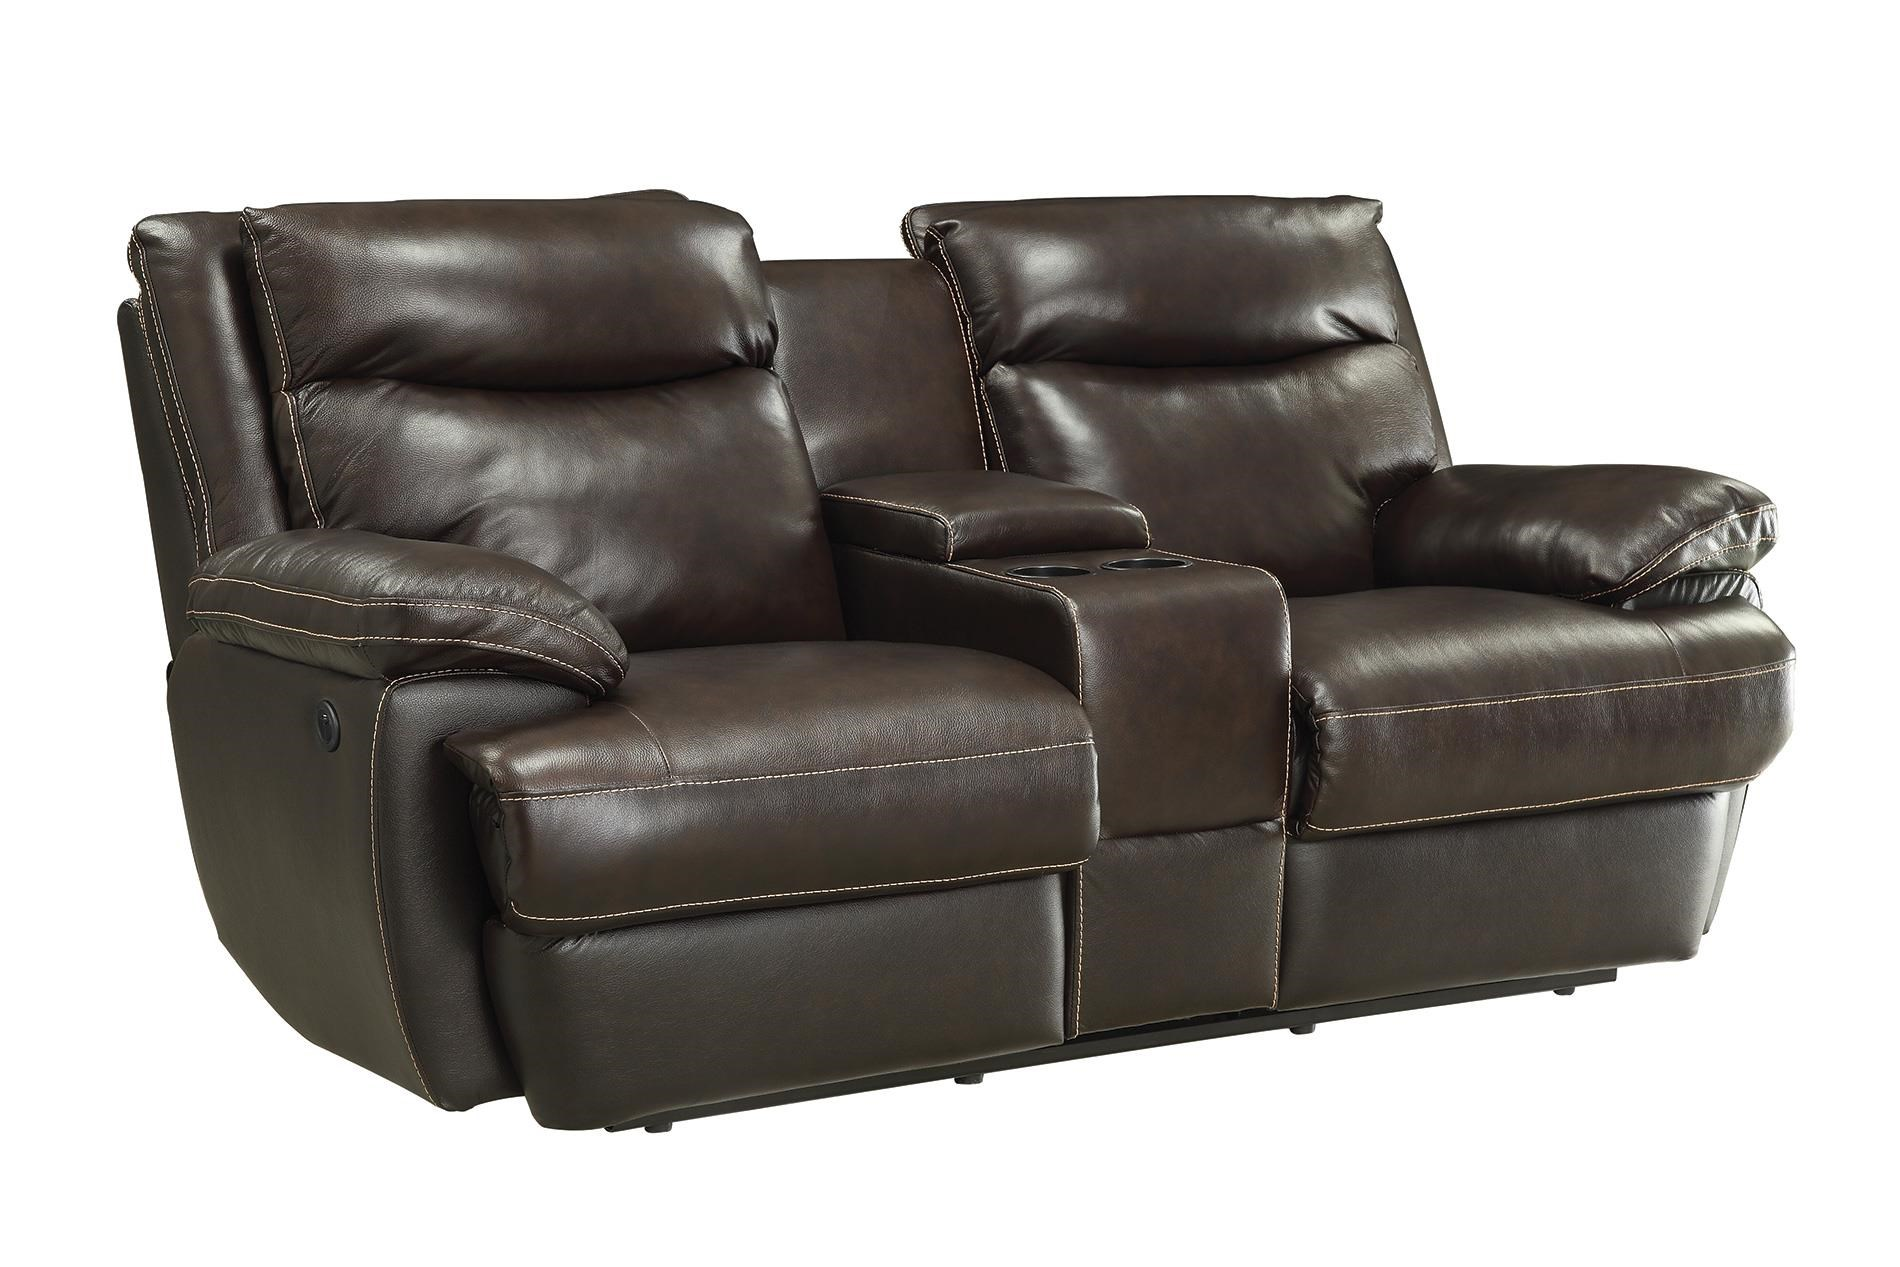 Coaster MacPherson Casual Power Reclining Loveseat With Storage And USB  Charging Ports   Coaster Fine Furniture